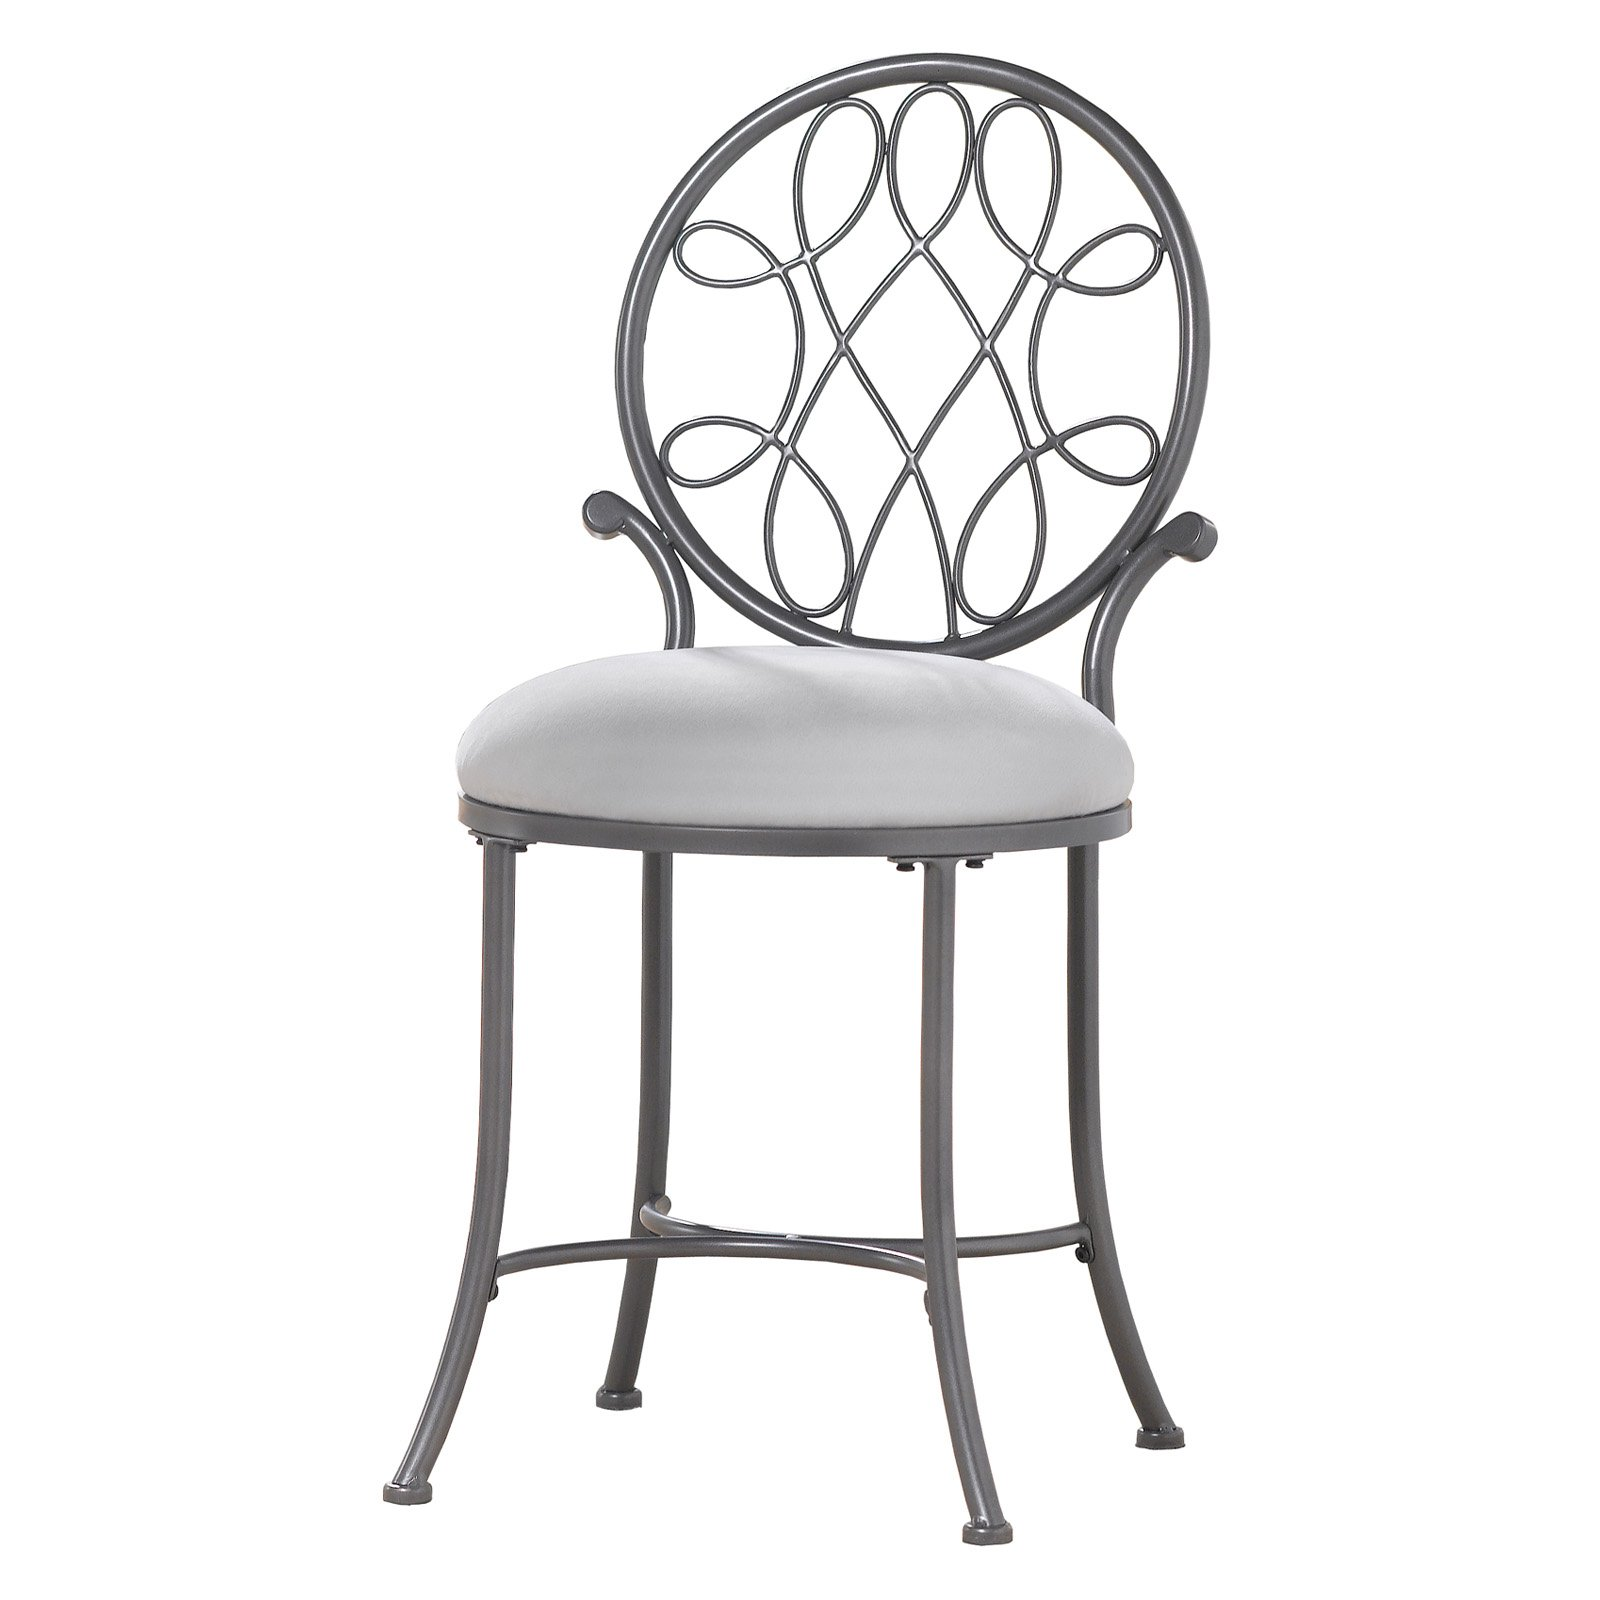 Vanity Chair Vanity Chair Stool Makeup Bathroom Chairs Round Metal